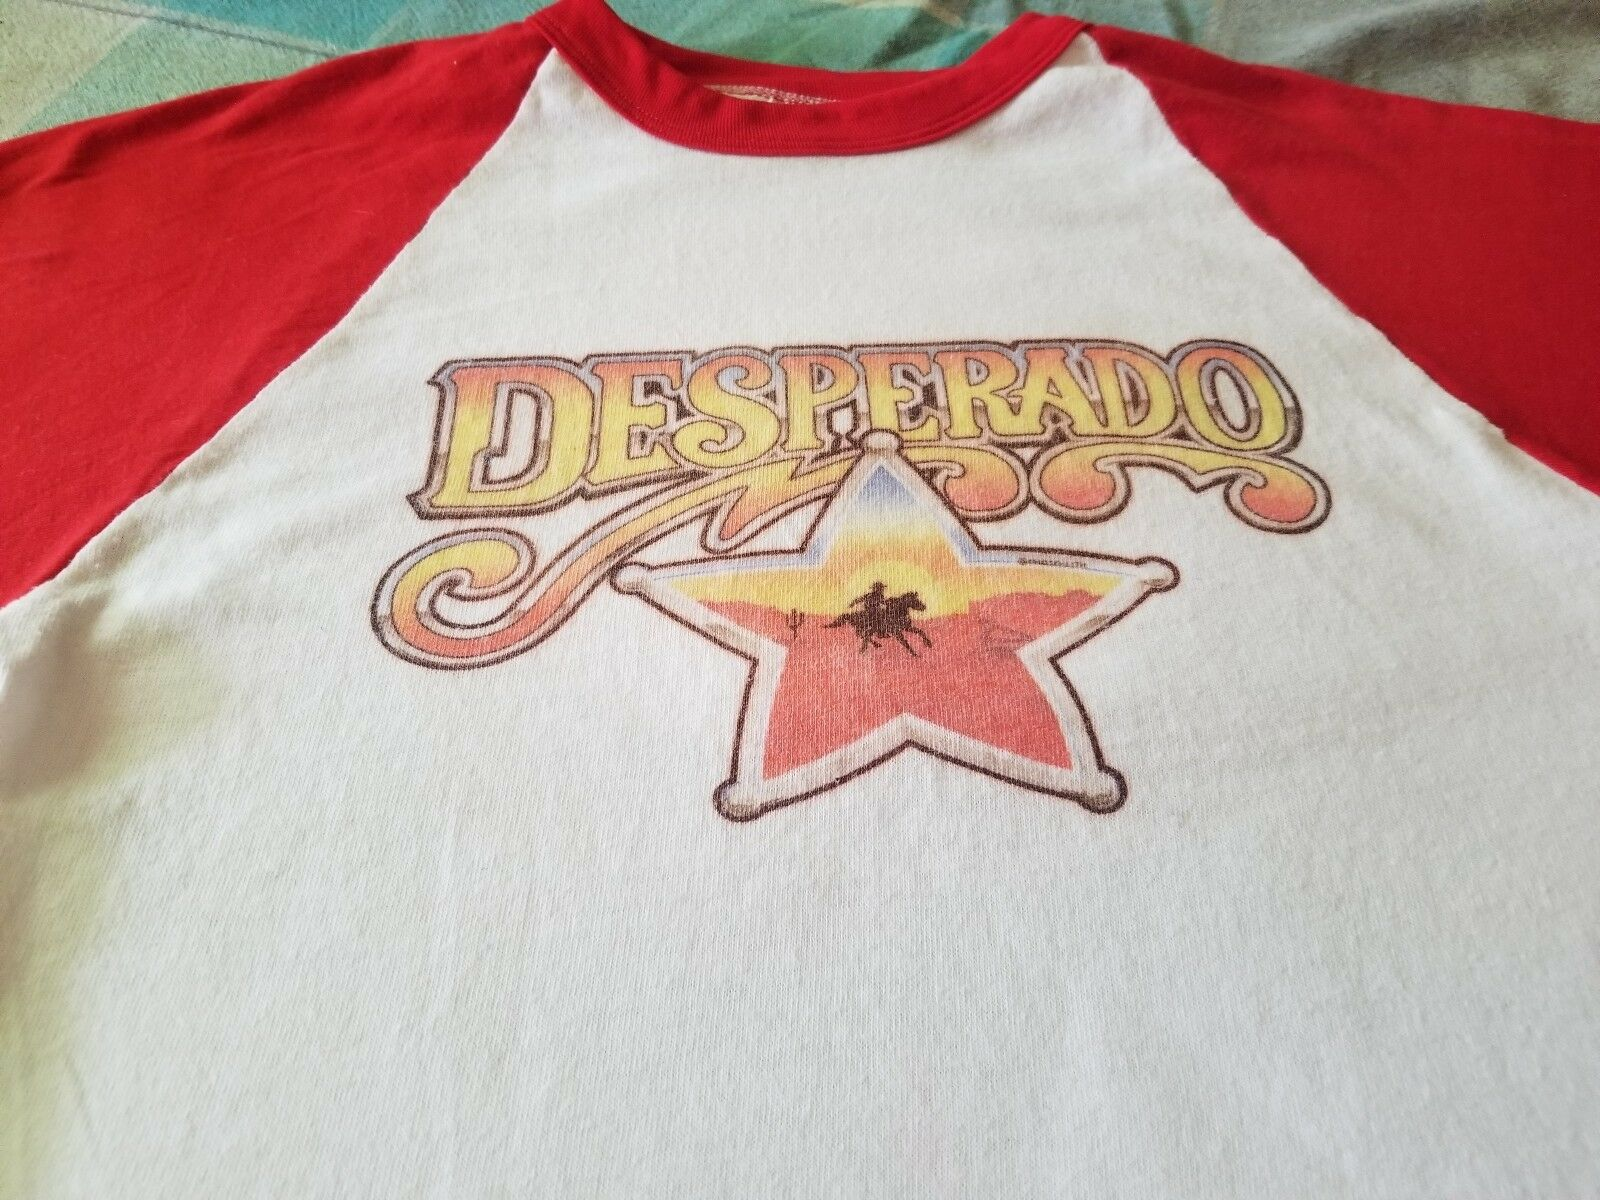 DESPERADO E.T. THE EXTRA TERRESTIAL VINTAGE 1982 BASEBALL STYLE SHIRT  MEDIUM